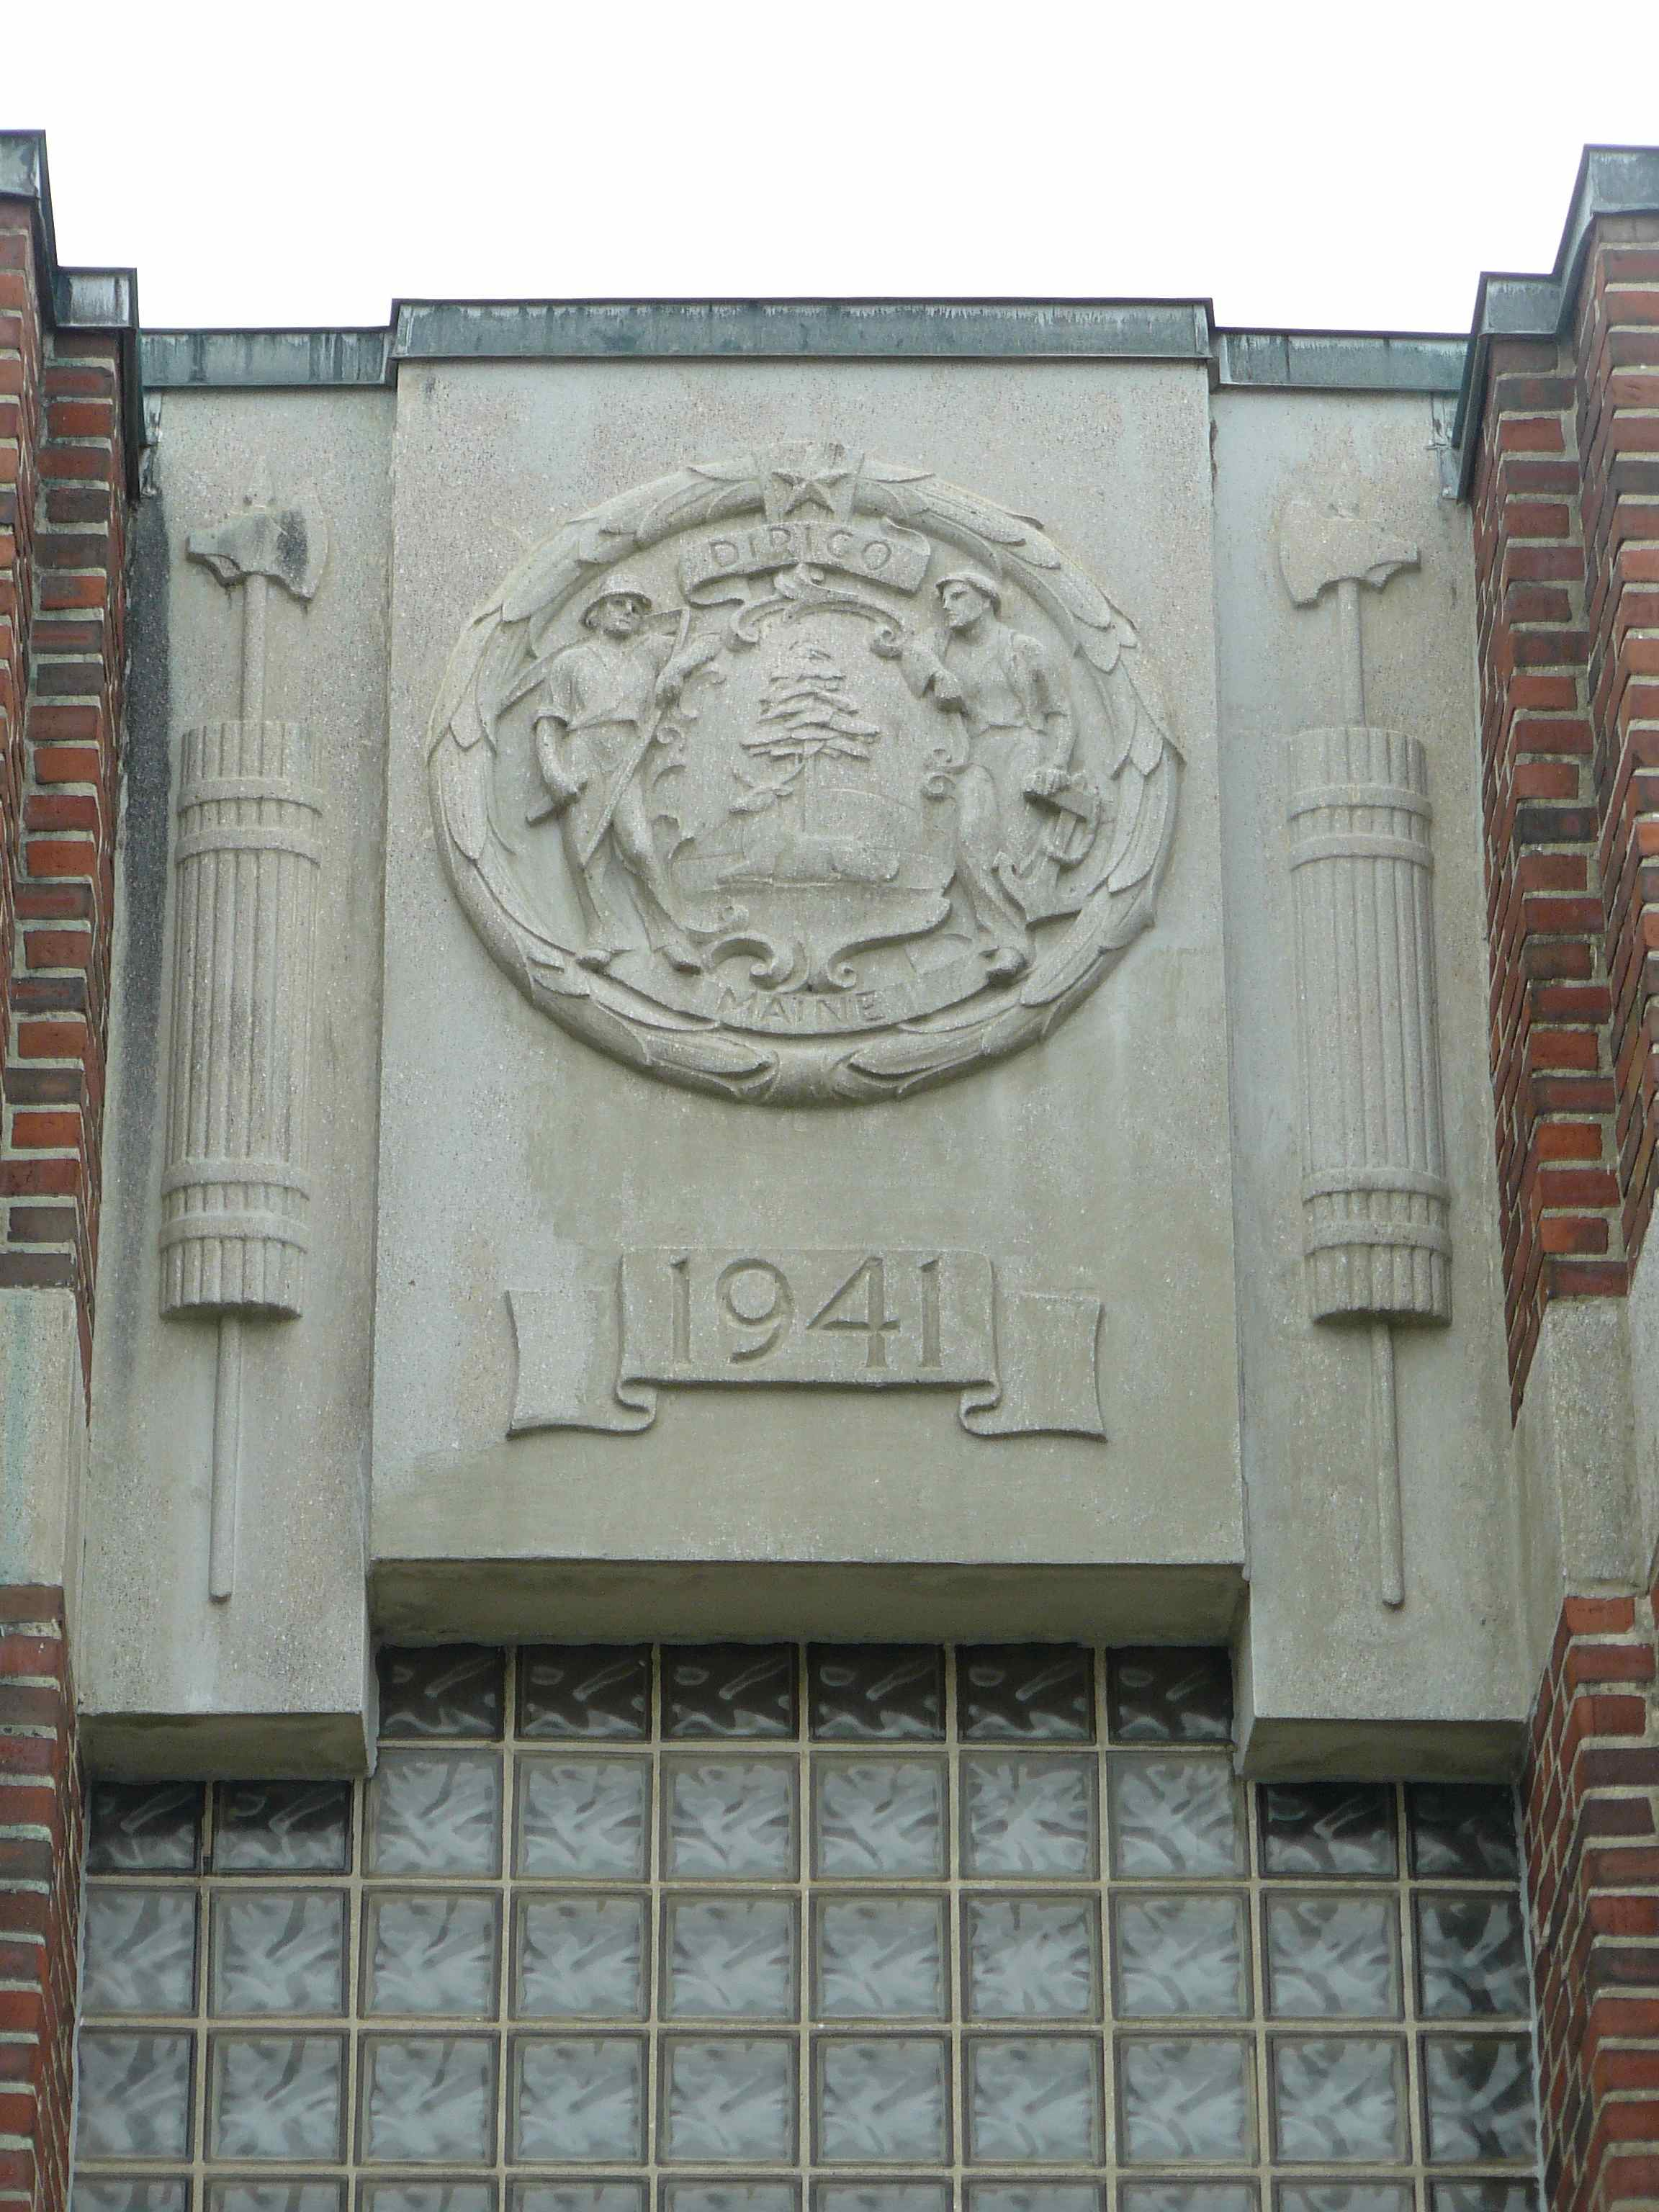 South_Portland_Armory_front_seal.jpg